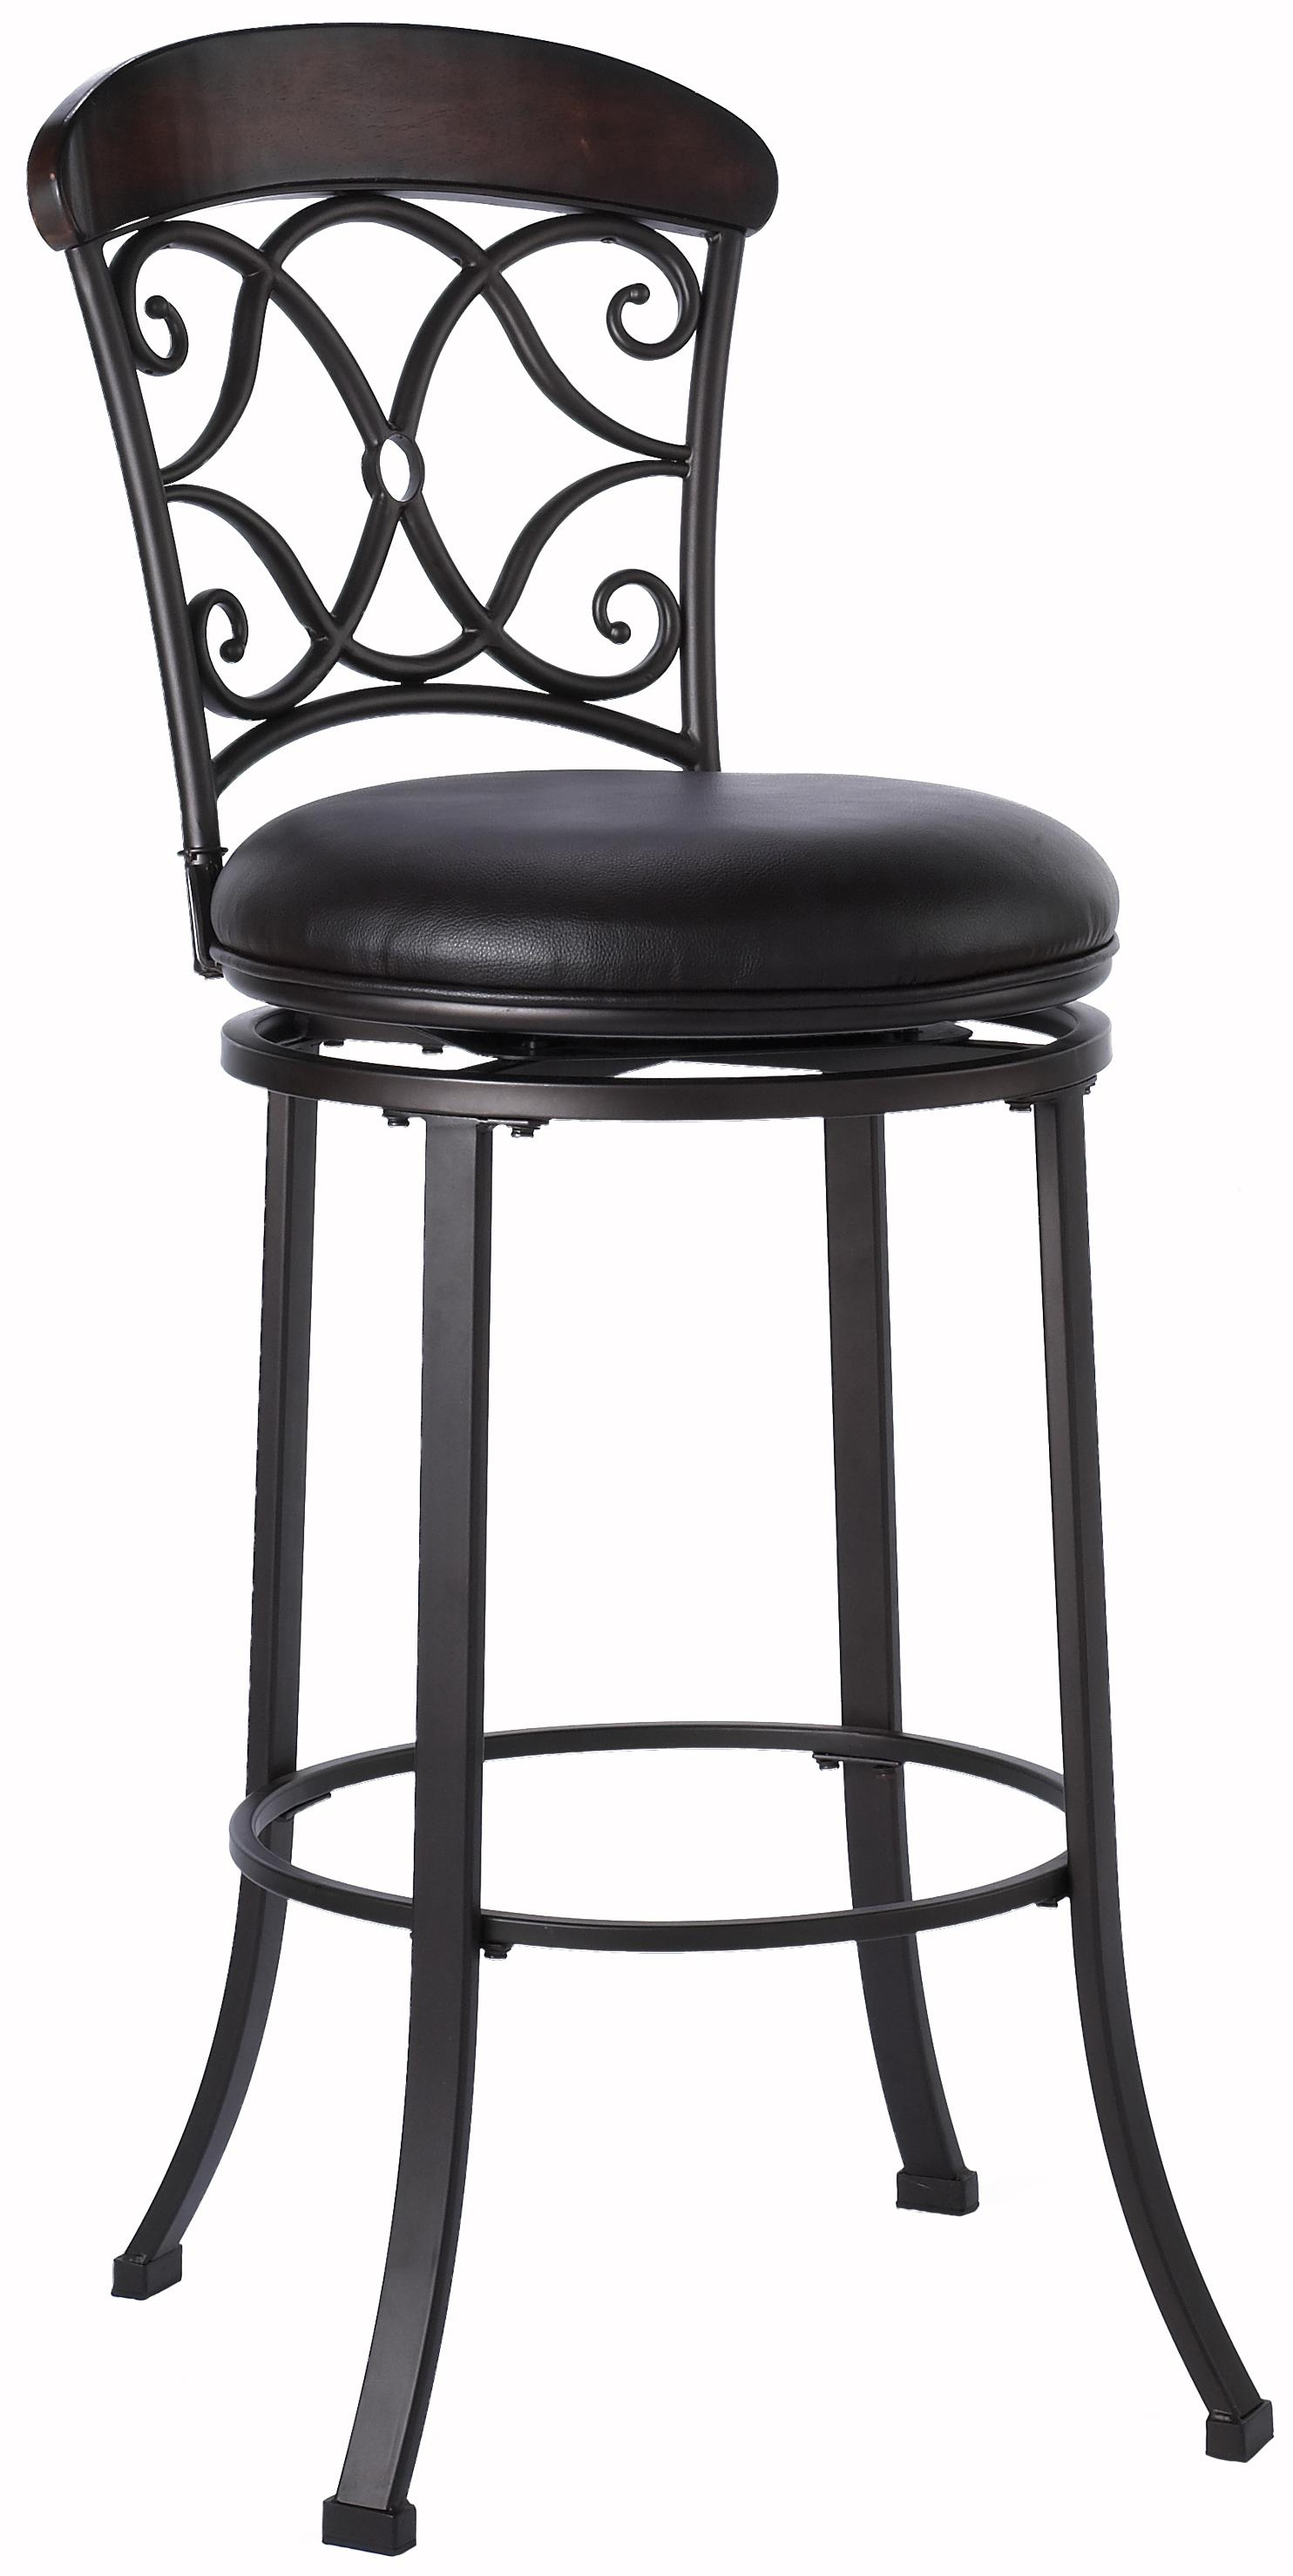 swivel jenkin item number wood b stools stool height hillsdale counter jenkins products bar